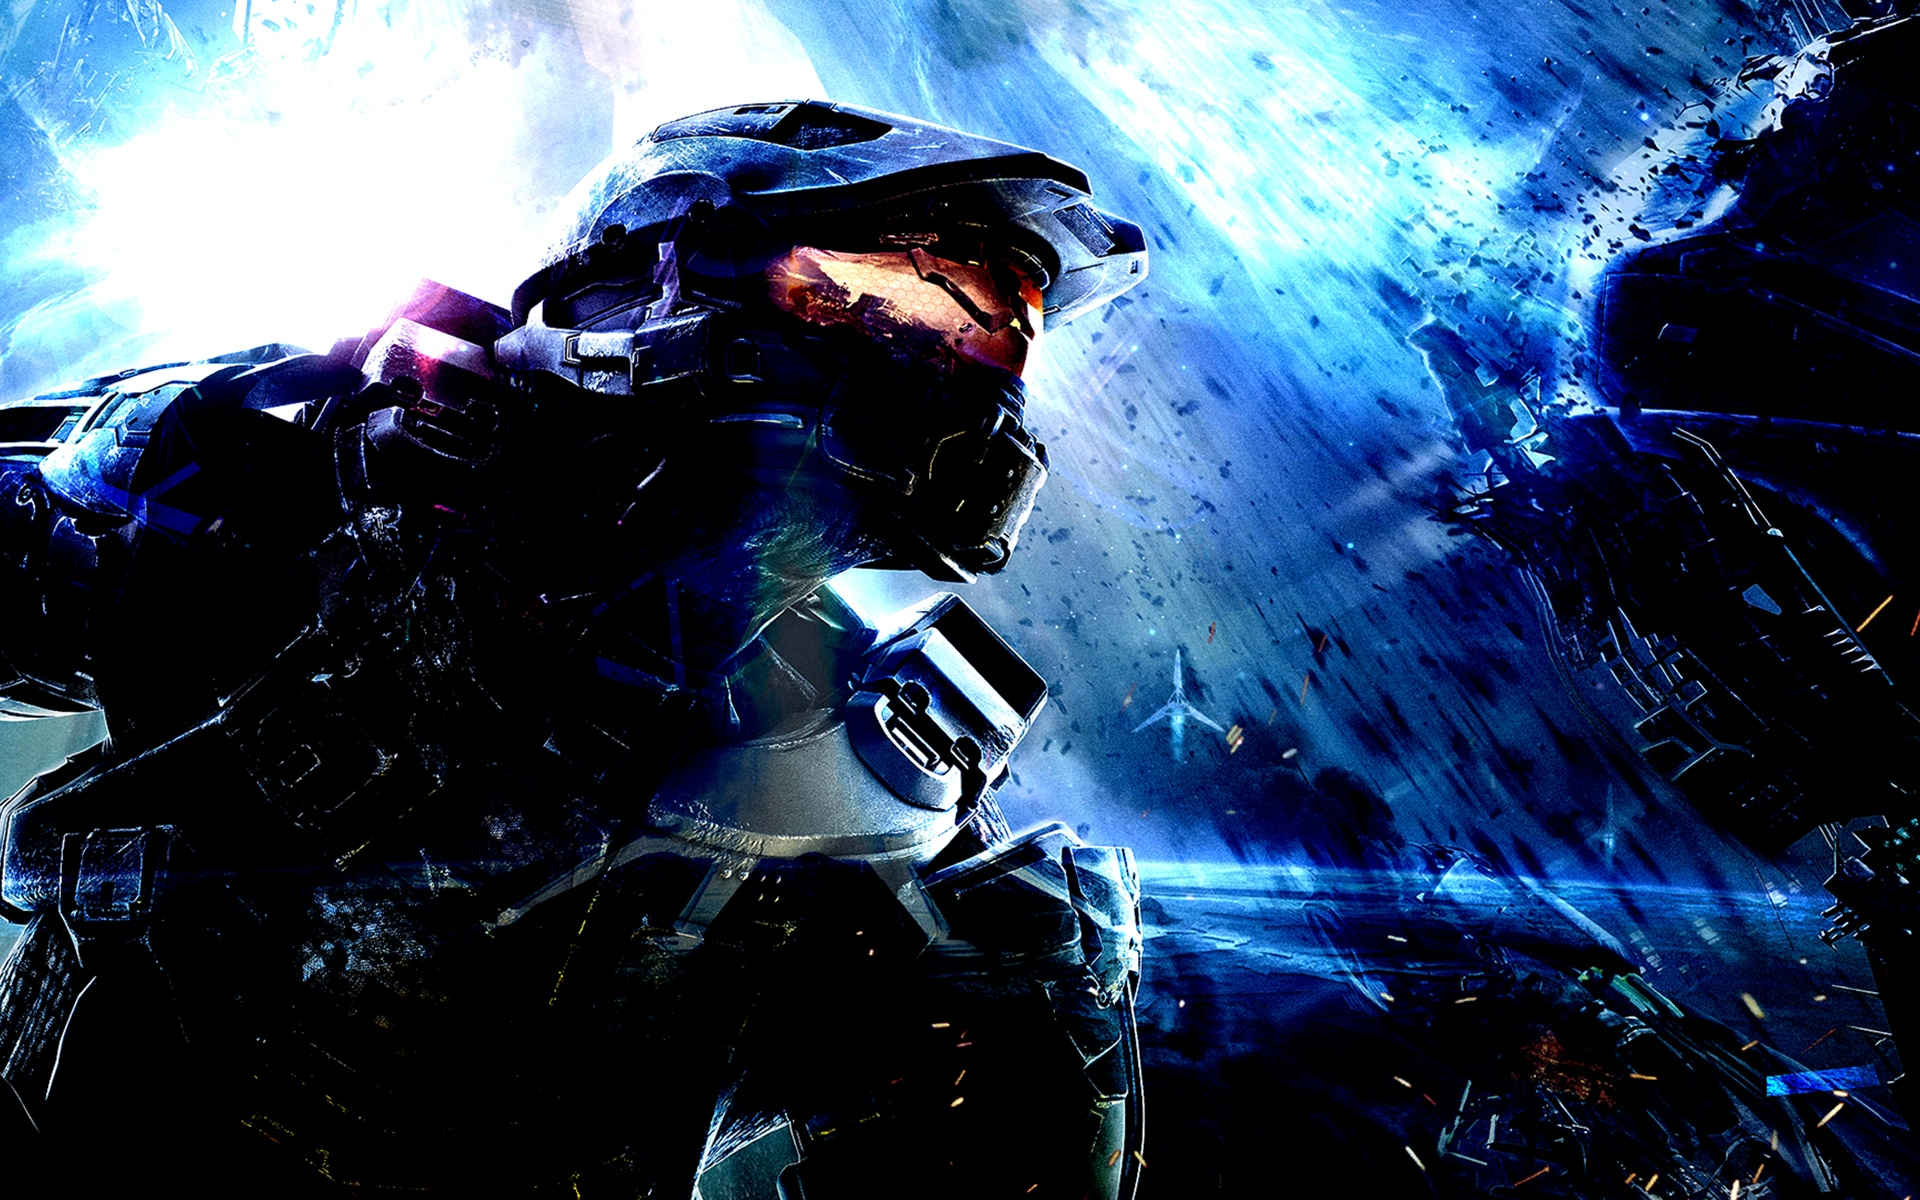 Halo Pictures A3 Hd Desktop Wallpapers 4k Hd